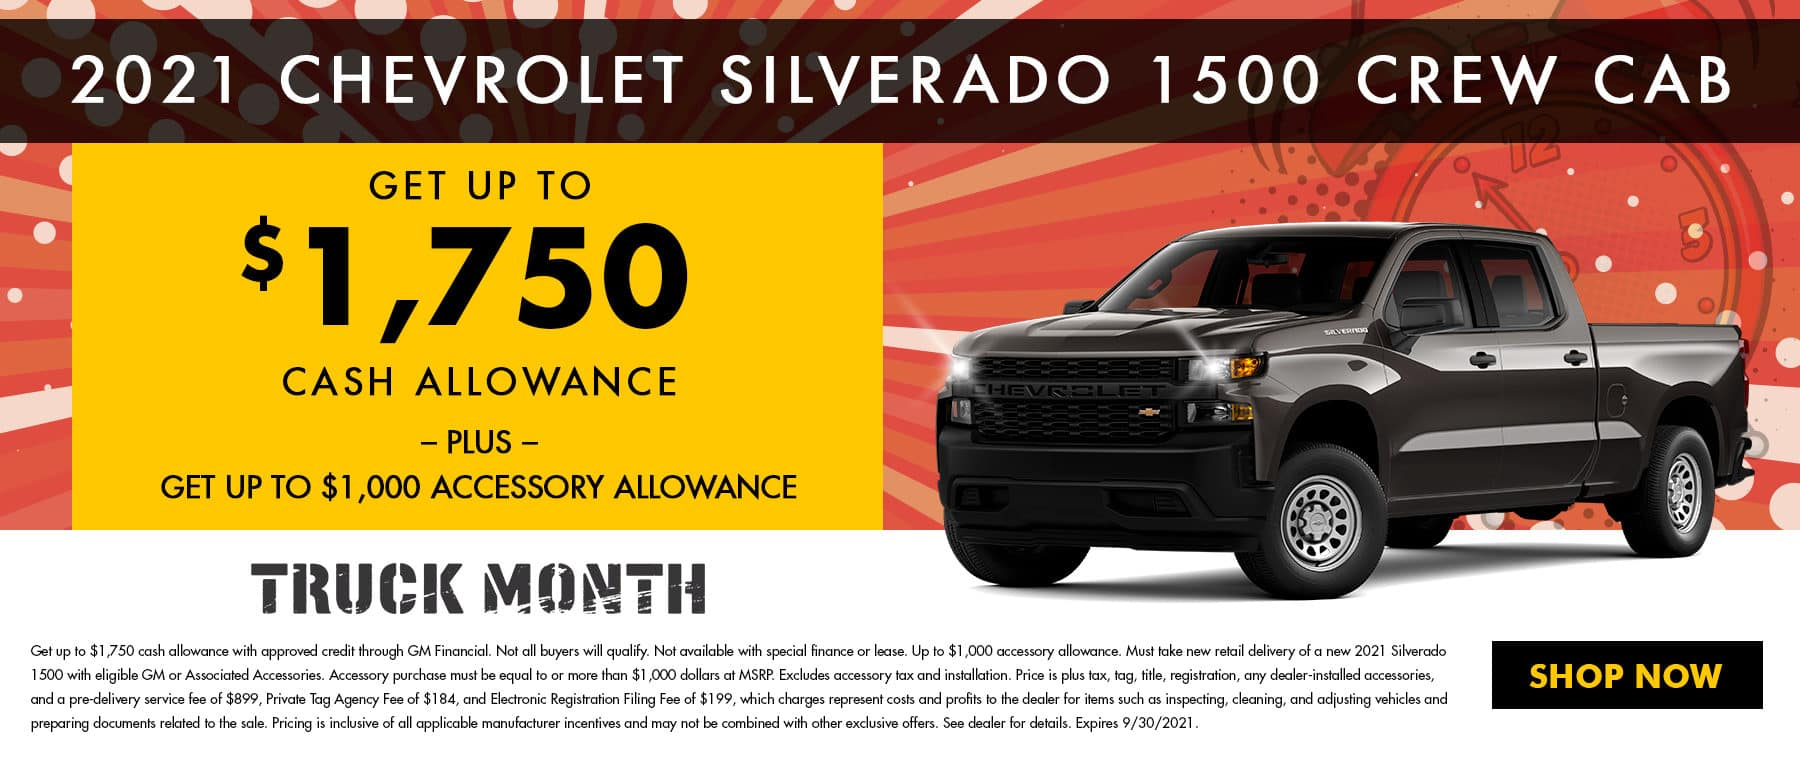 2021 Chevrolet Silverado 1500 Crew Cab   Get Up To $1,750 Cash Allowance - PLUS - Get Up To $1,000 Accessory Allowance